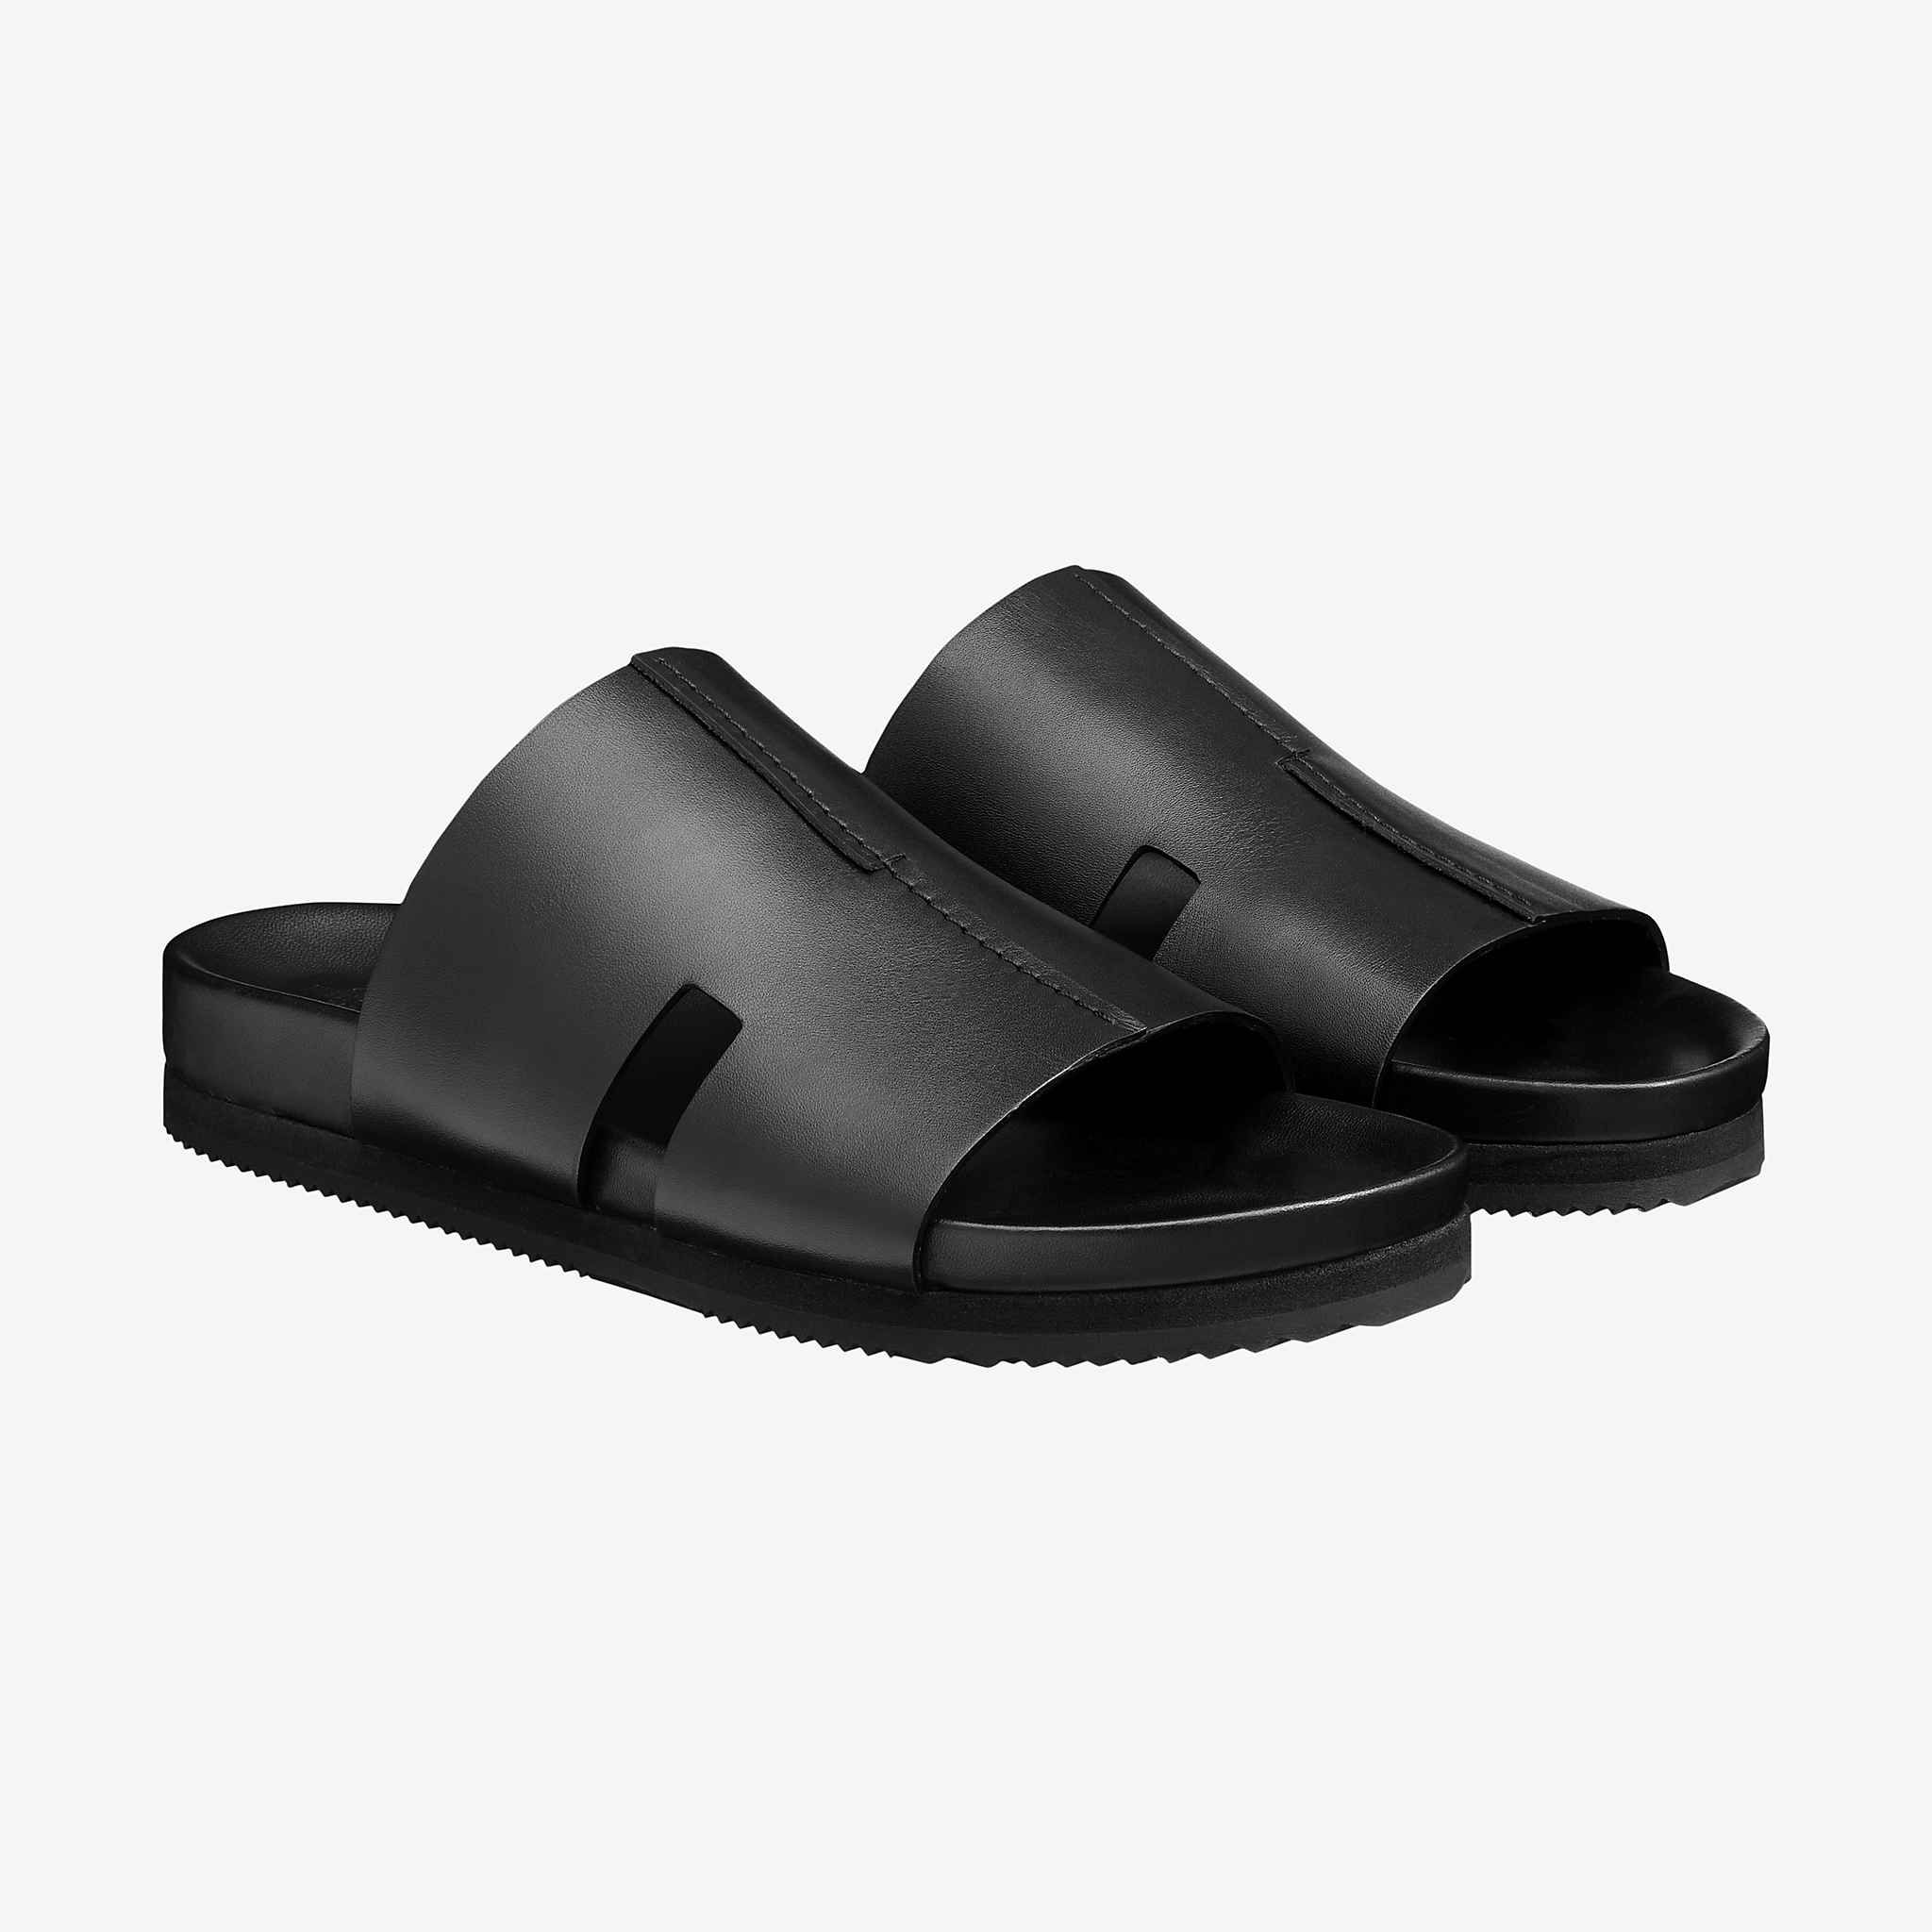 Hermes The Official Hermes Online Store Mens Leather Sandals